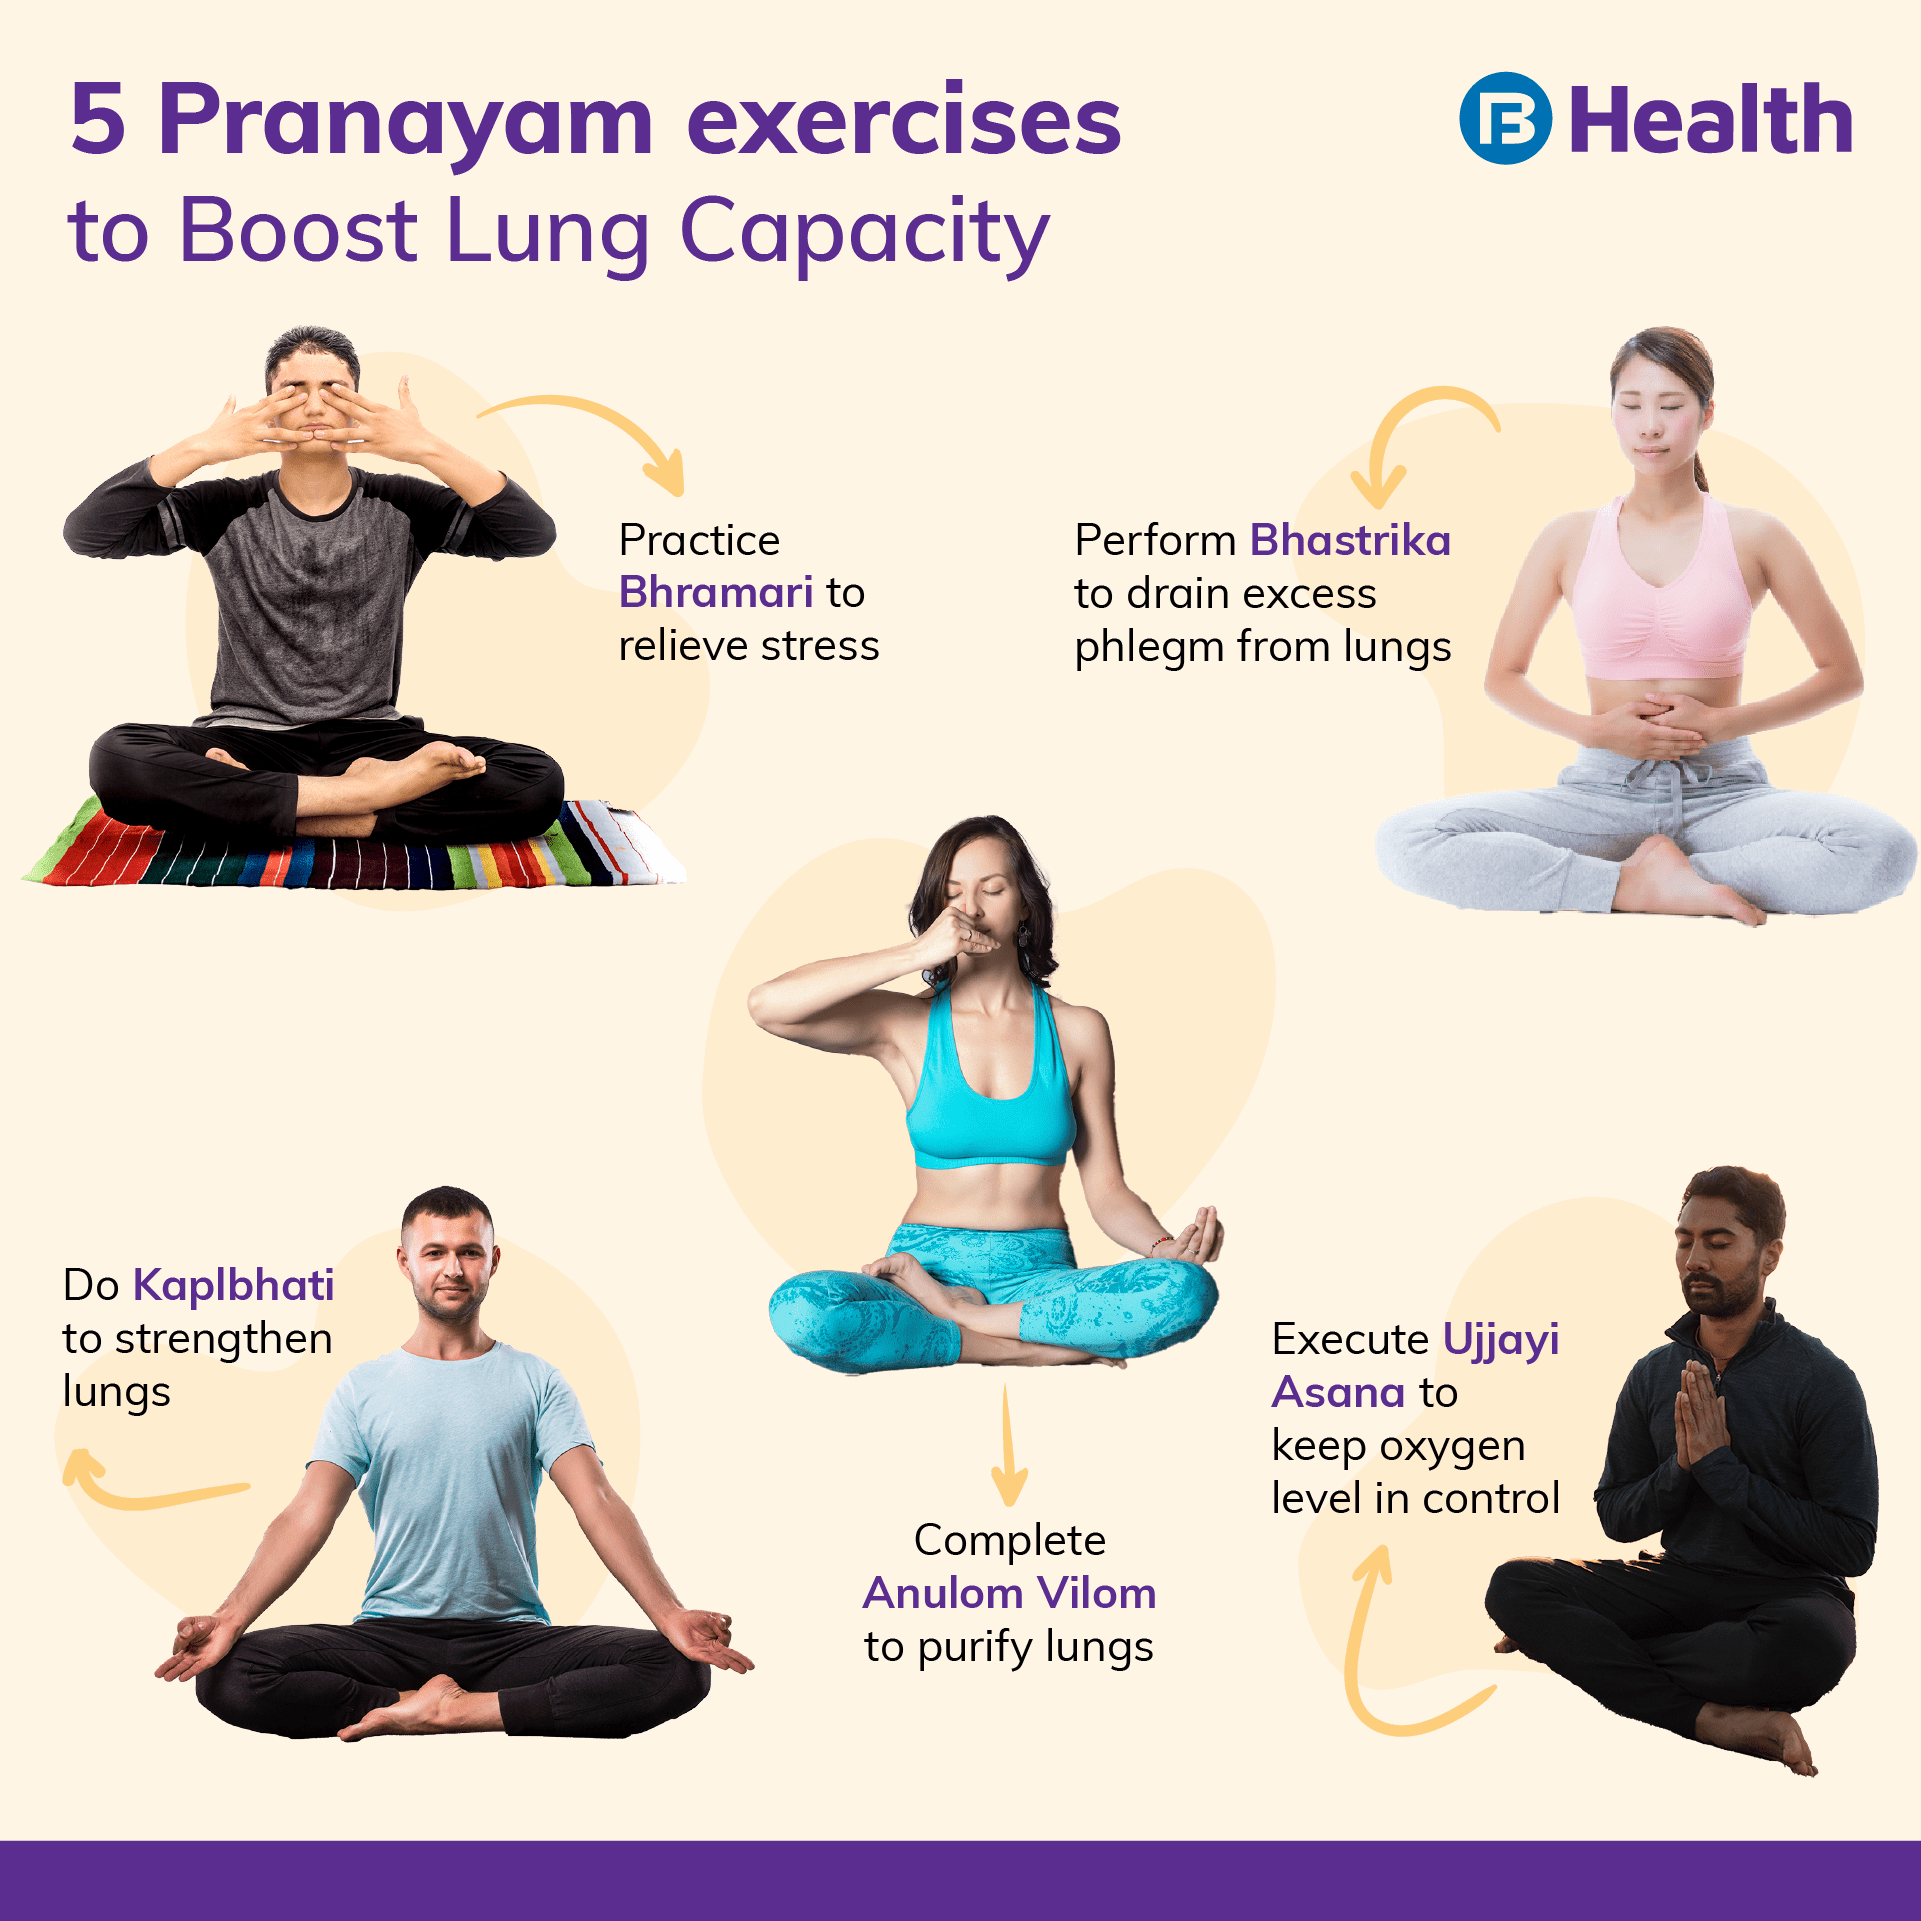 Pranayam exercise to boost lung capacity